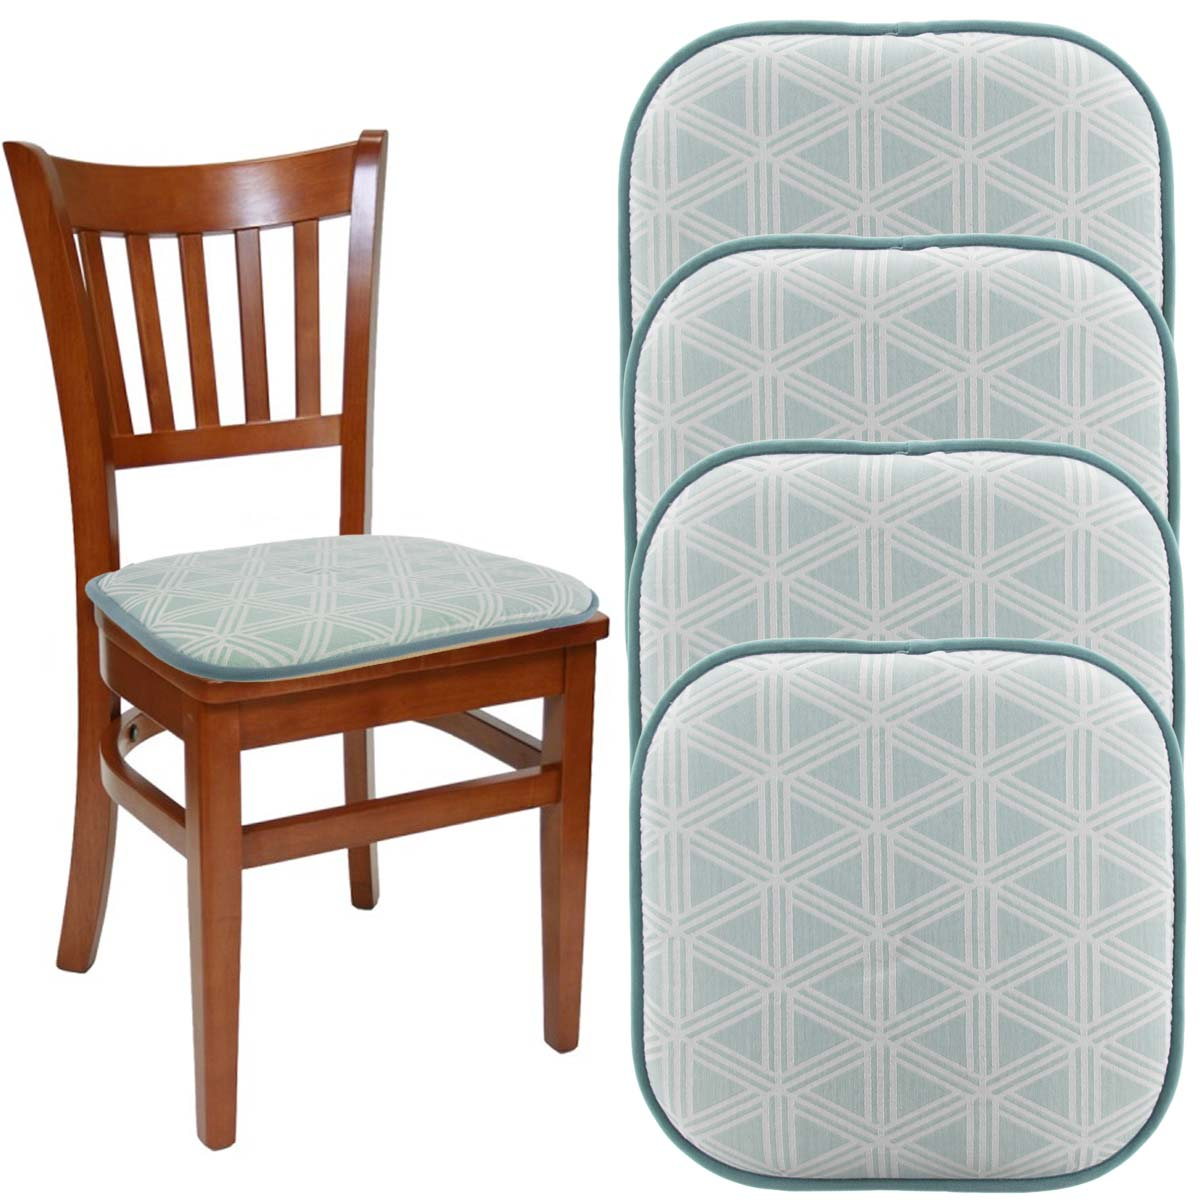 Marvelous Dream Home (Set Of 4) Gripper Chair Pads For Office Chairs, 16u201d